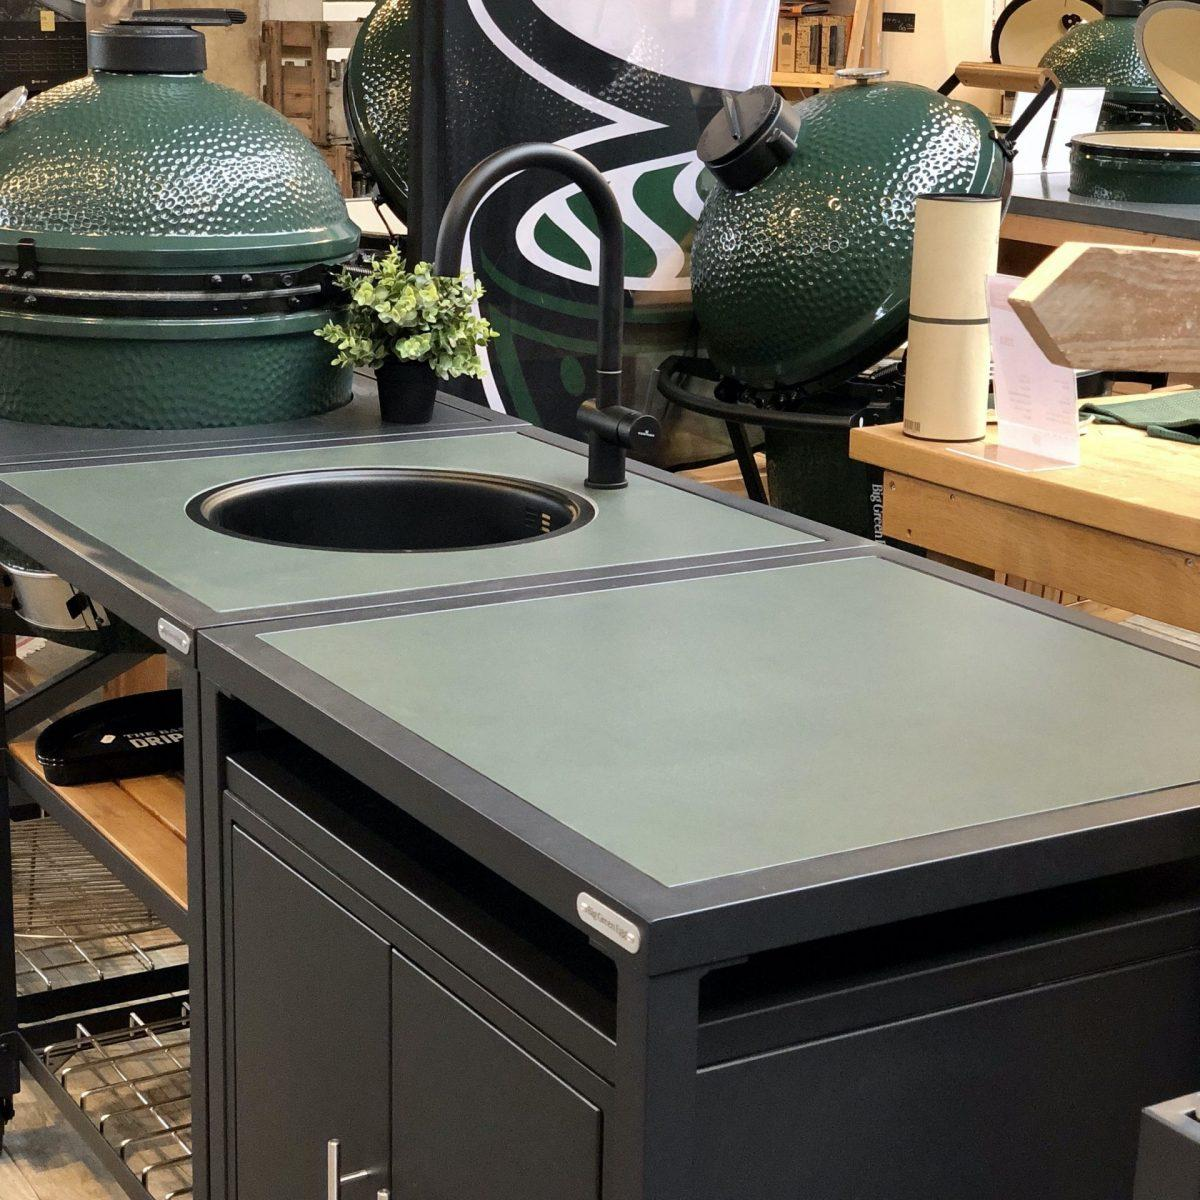 Dekton natuursteen insert - Modular Outdoor Workspace - Big Green Egg